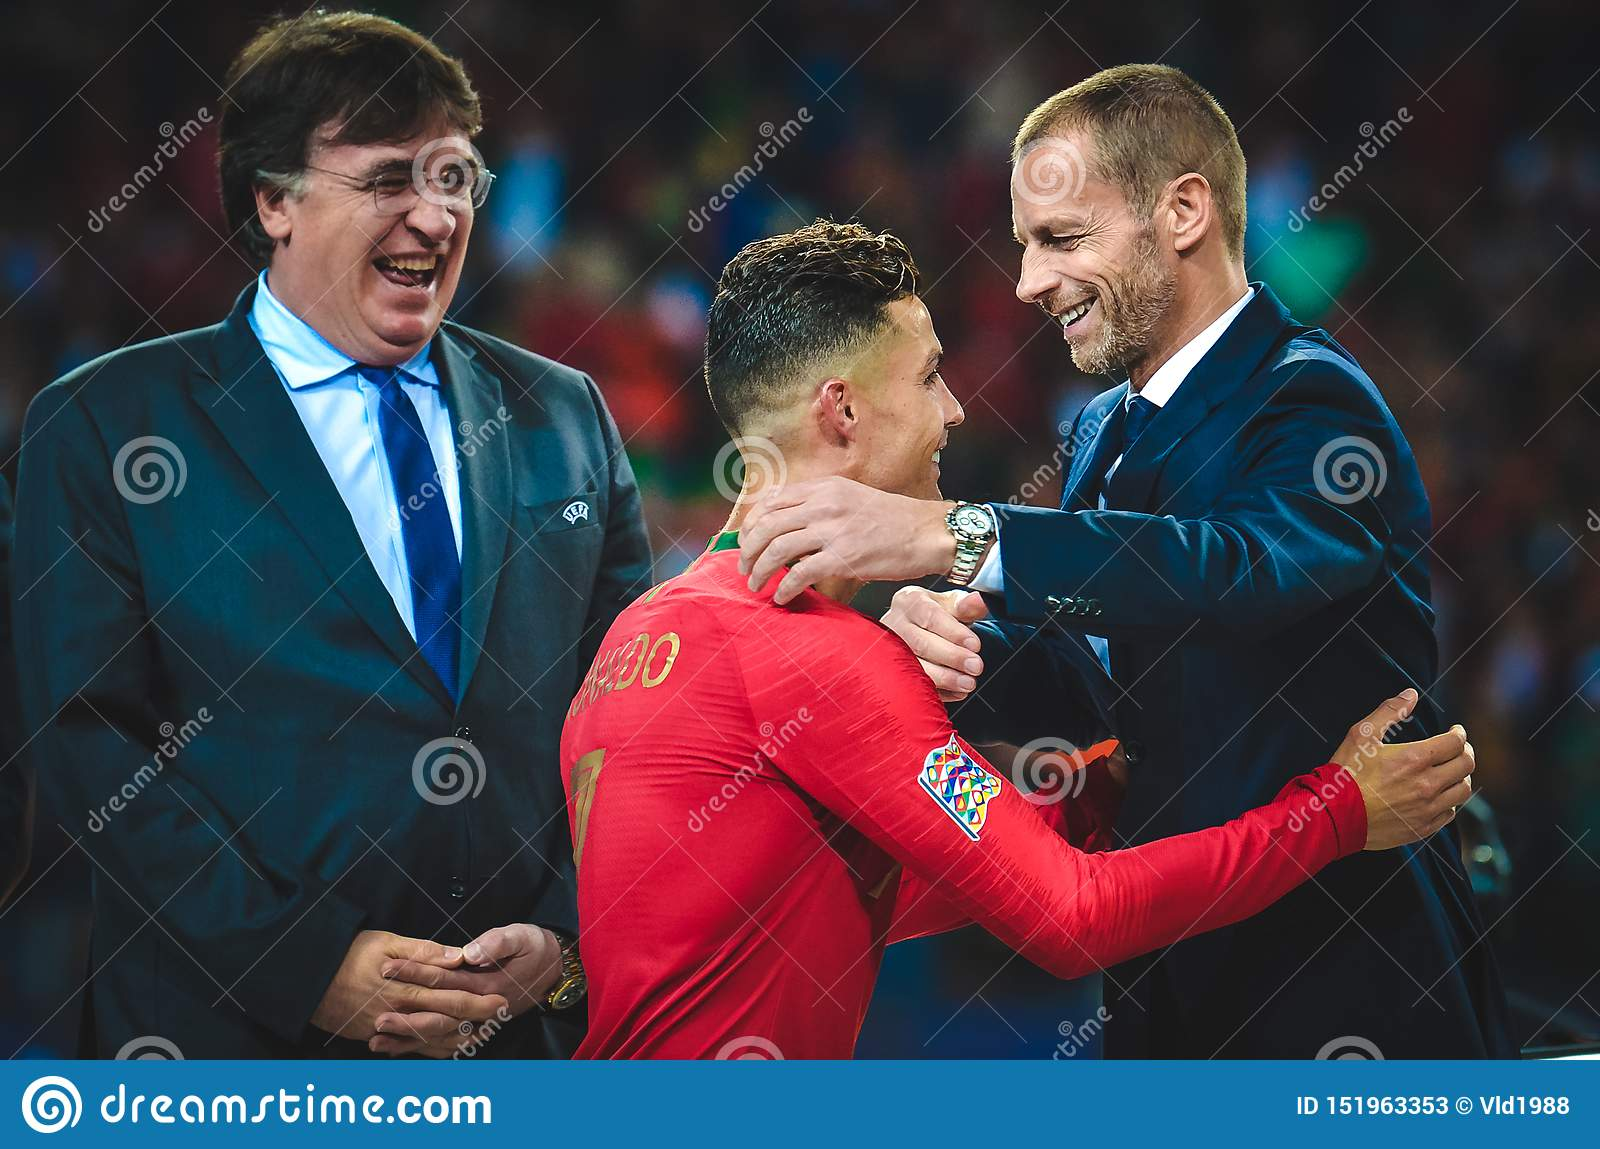 Porto Portuglal June 09 2019 Cristiano Ronaldo Receive Gold Medals During The Uefa Nations League Finals Match Between Editorial Stock Photo Image Of Ball Play 151963353